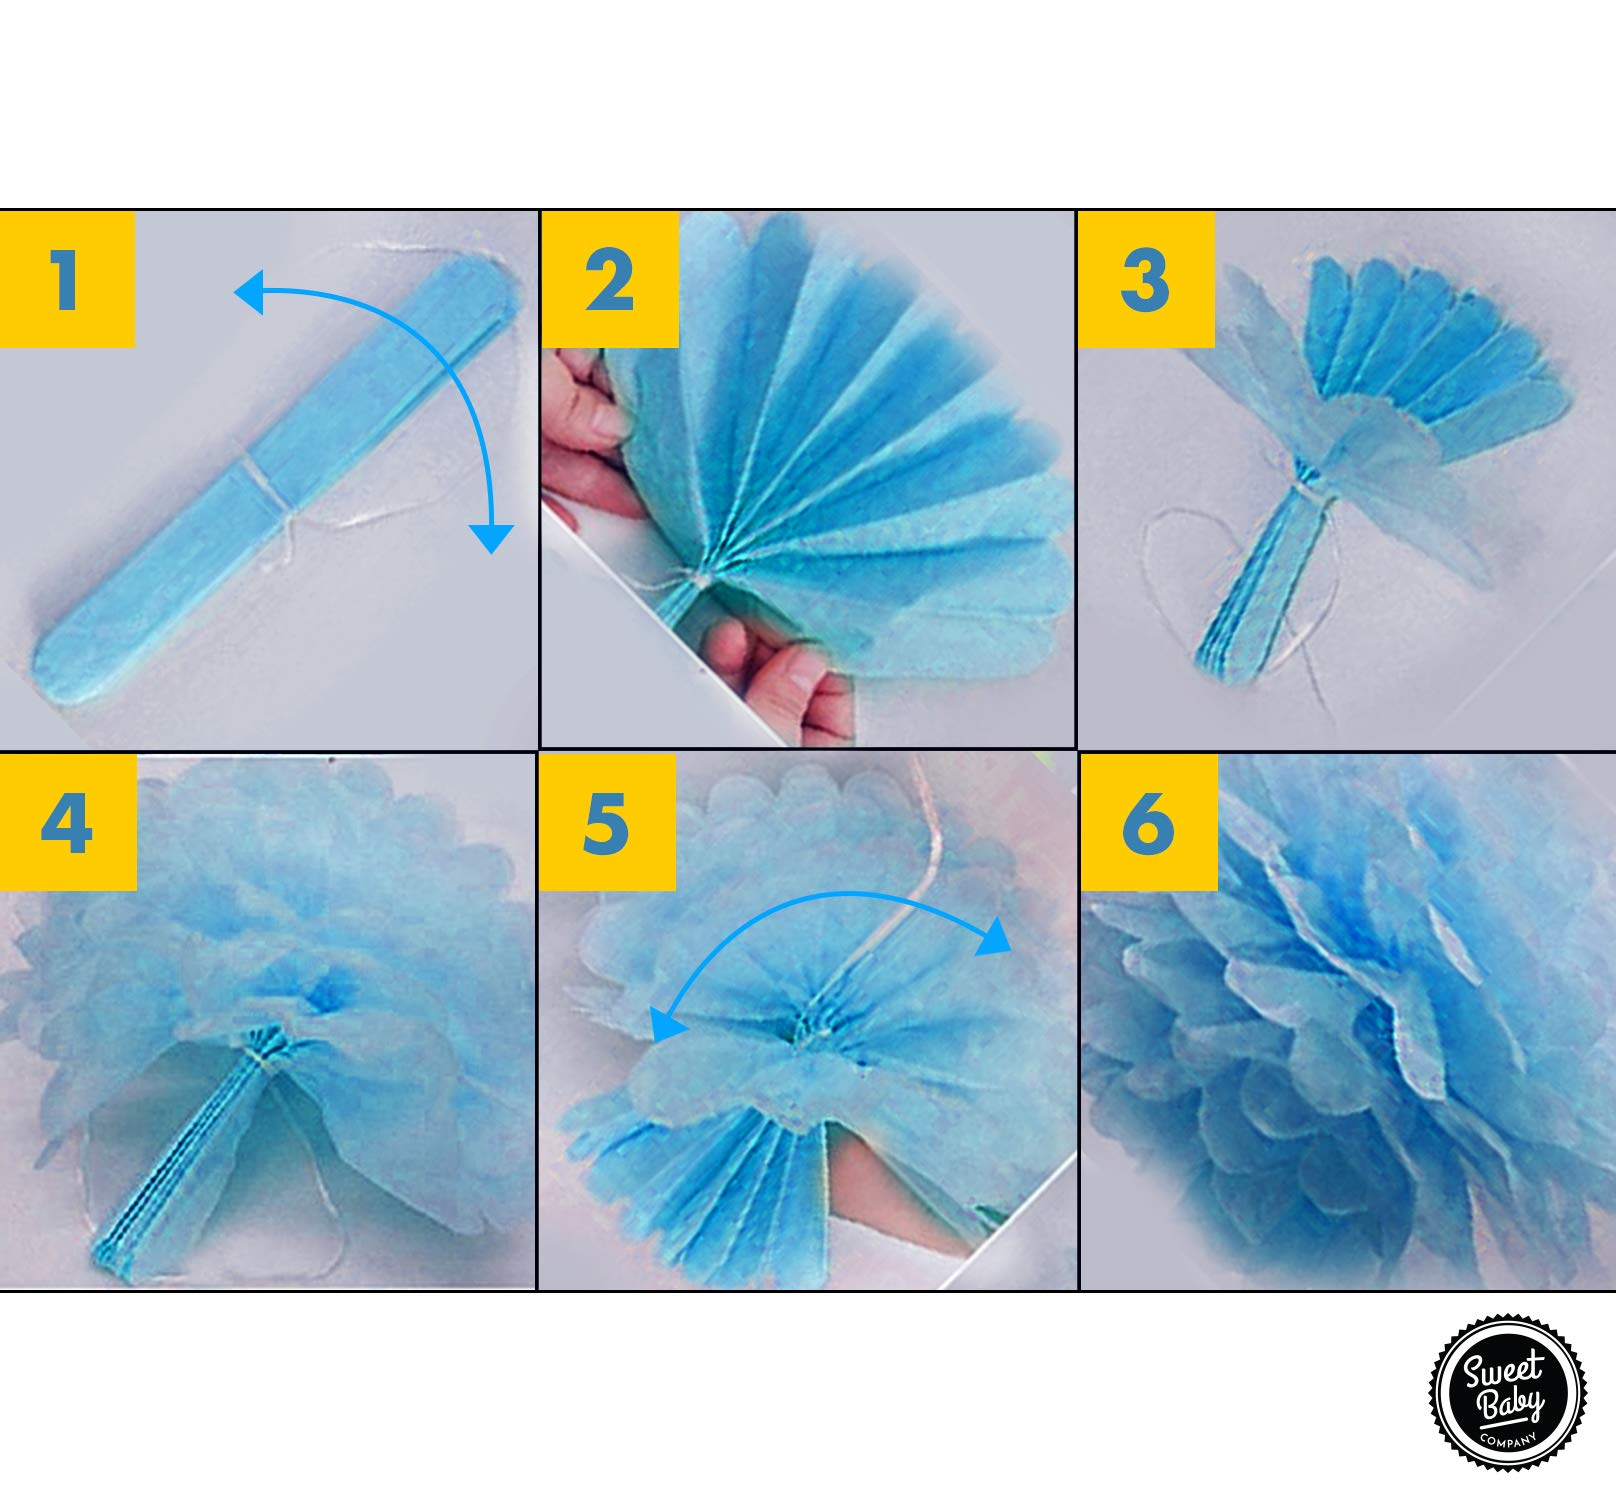 Sweet Baby Co. Baby Shower Decorations For Boy With It's A Boy Banner, Paper Lanterns, Honeycomb Balls, Paper Tissue Pom Poms, Confetti Balloons, Silver Balloon Ribbon (Baby Blue, True Blue, Grey and White)   Baby Shower Decorations Set by Sweet Baby Company (Image #6)